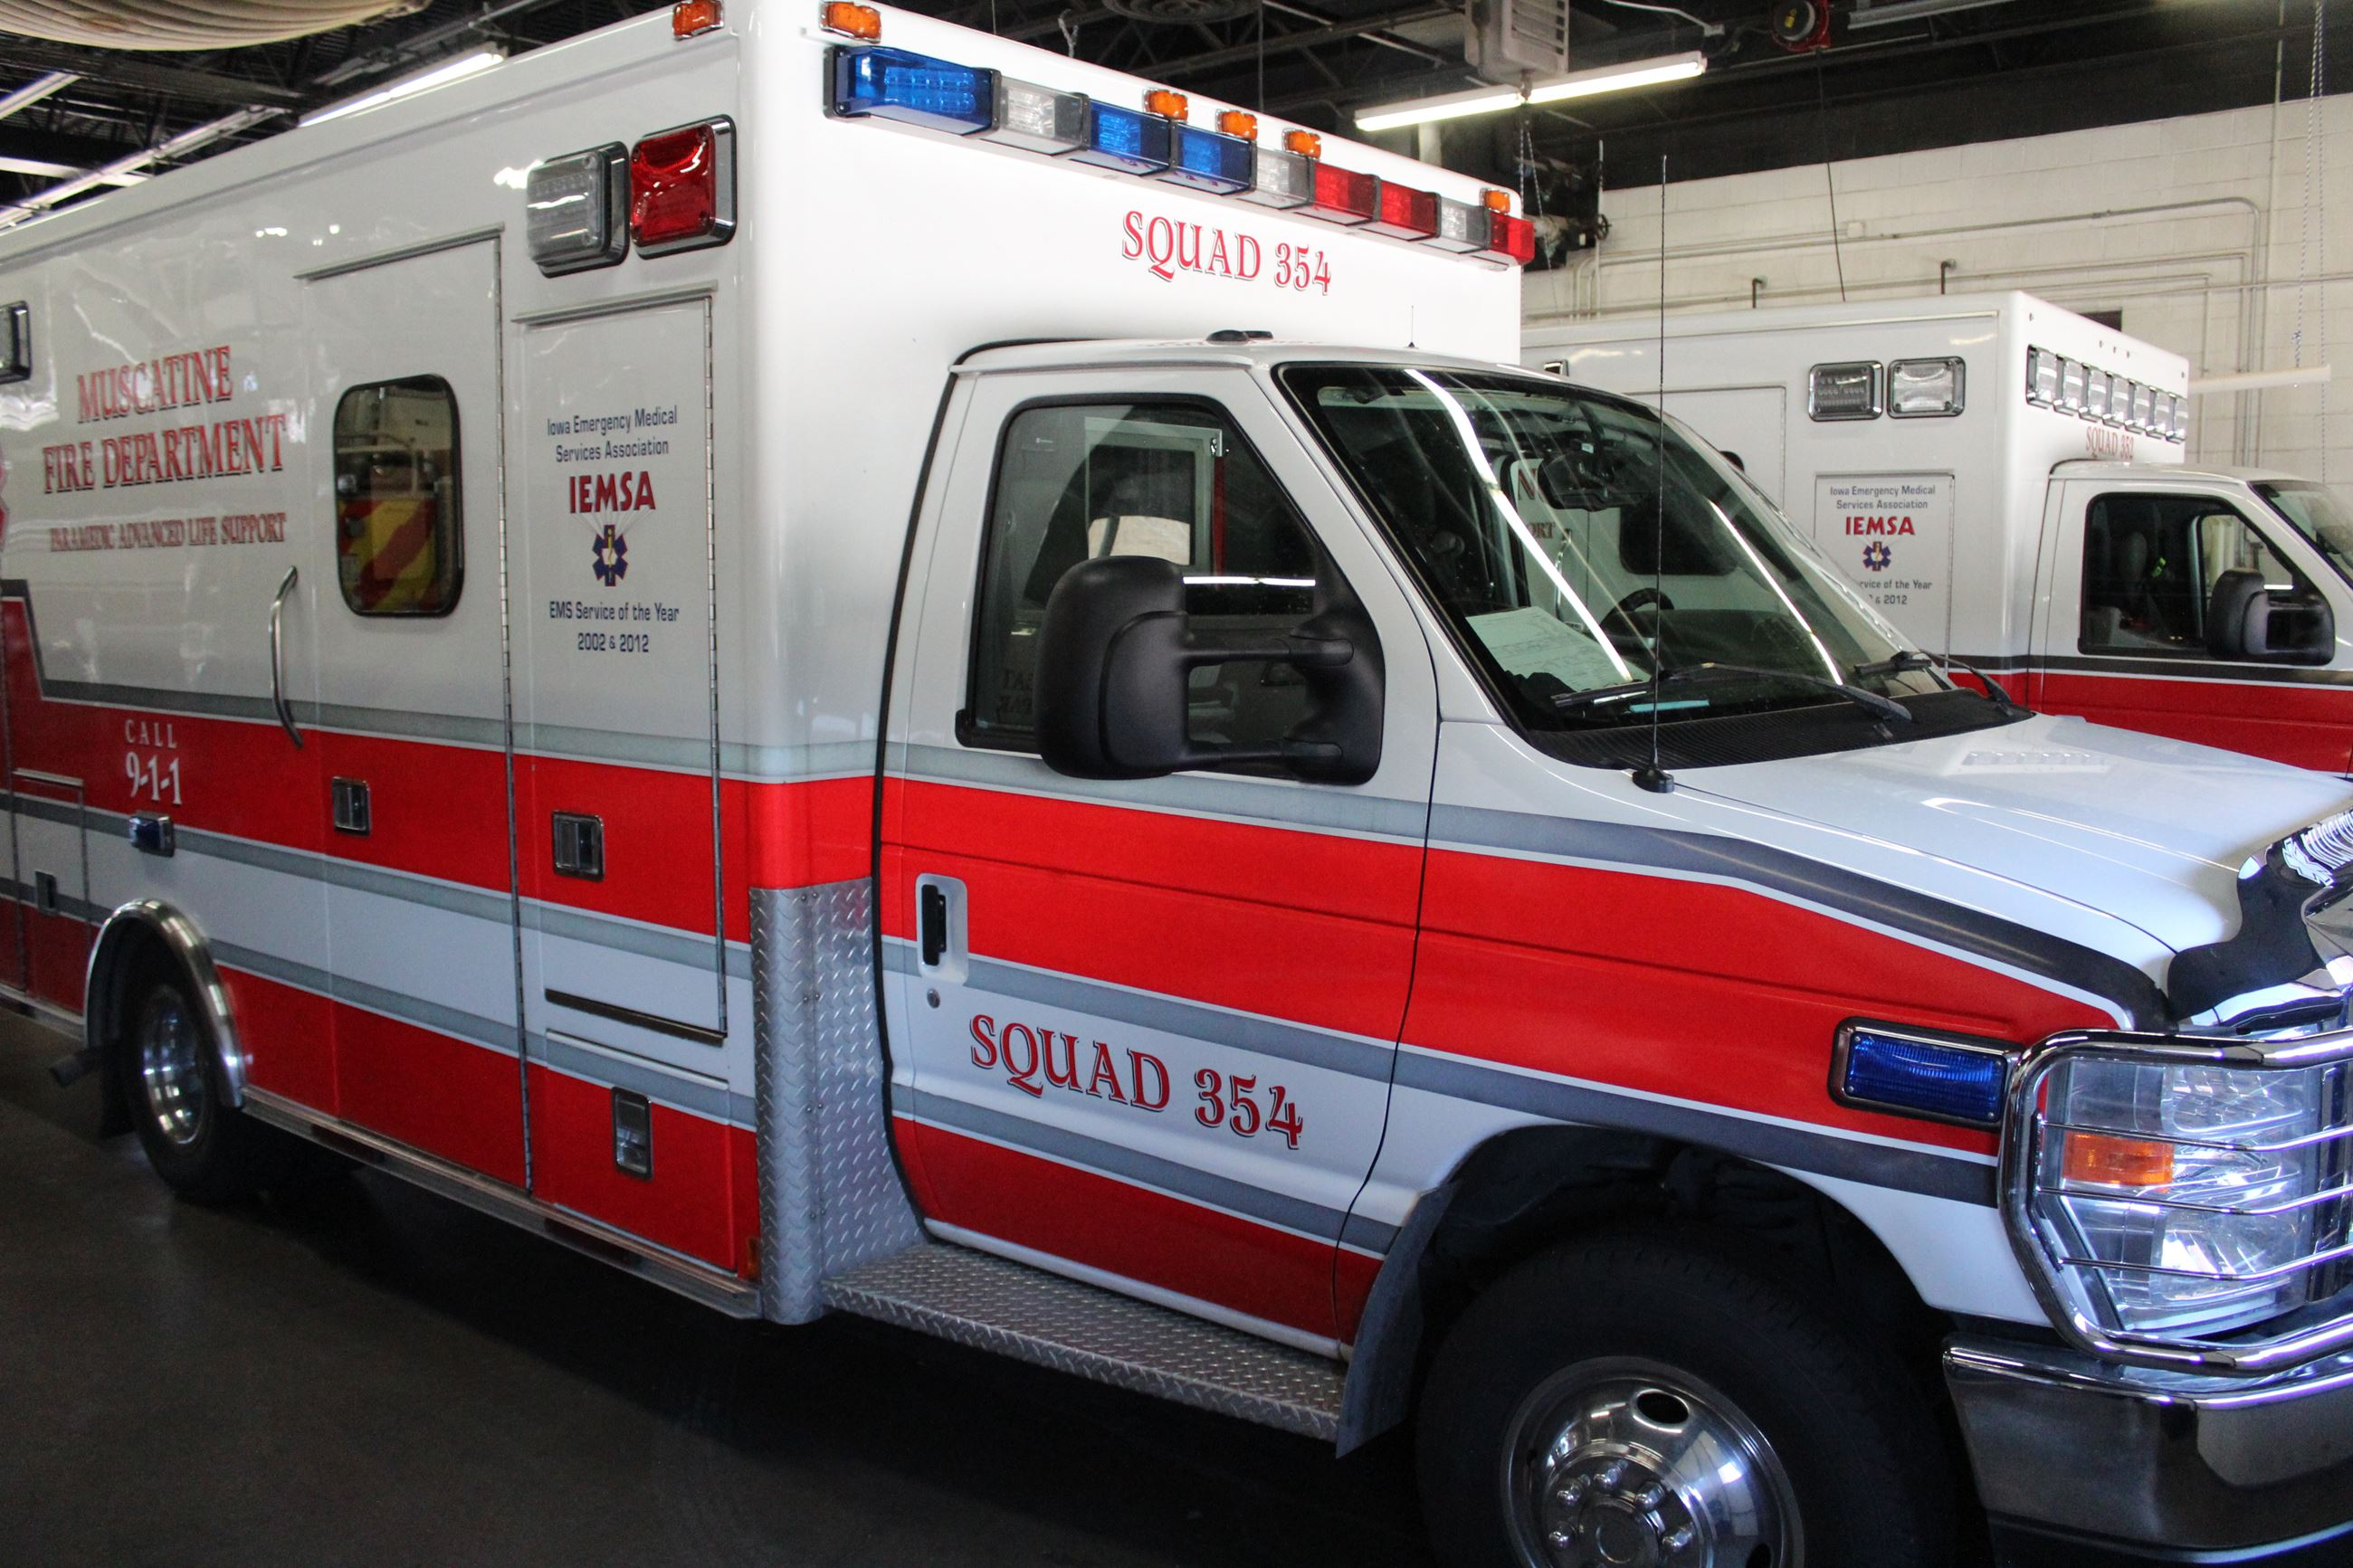 072320 Ambulance Type 1 Squad 354 exterior in bay (JPG)